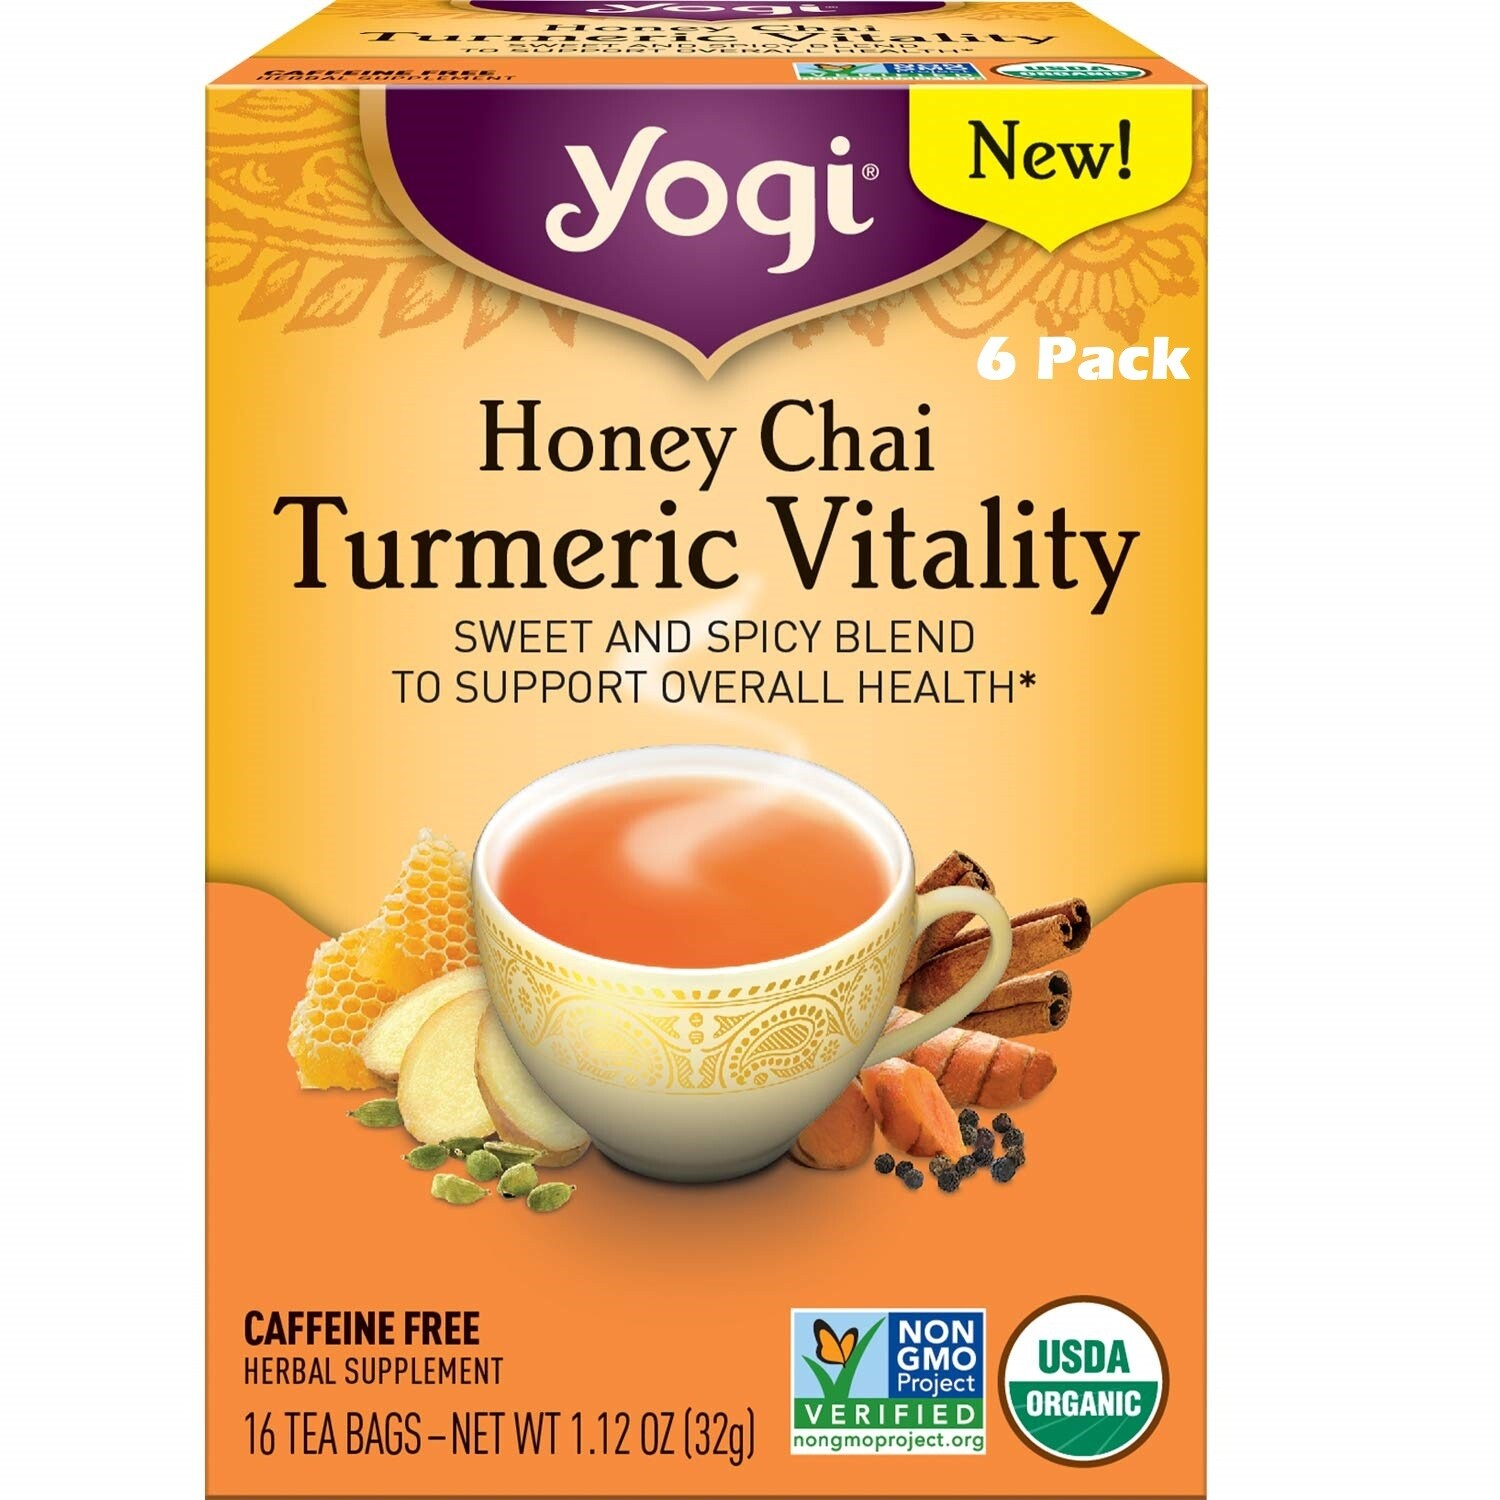 Yogi Honey Chai Turmeric Tea Vitality Sweet and Spicy Blend, 16 Bags/box, Pack of 6